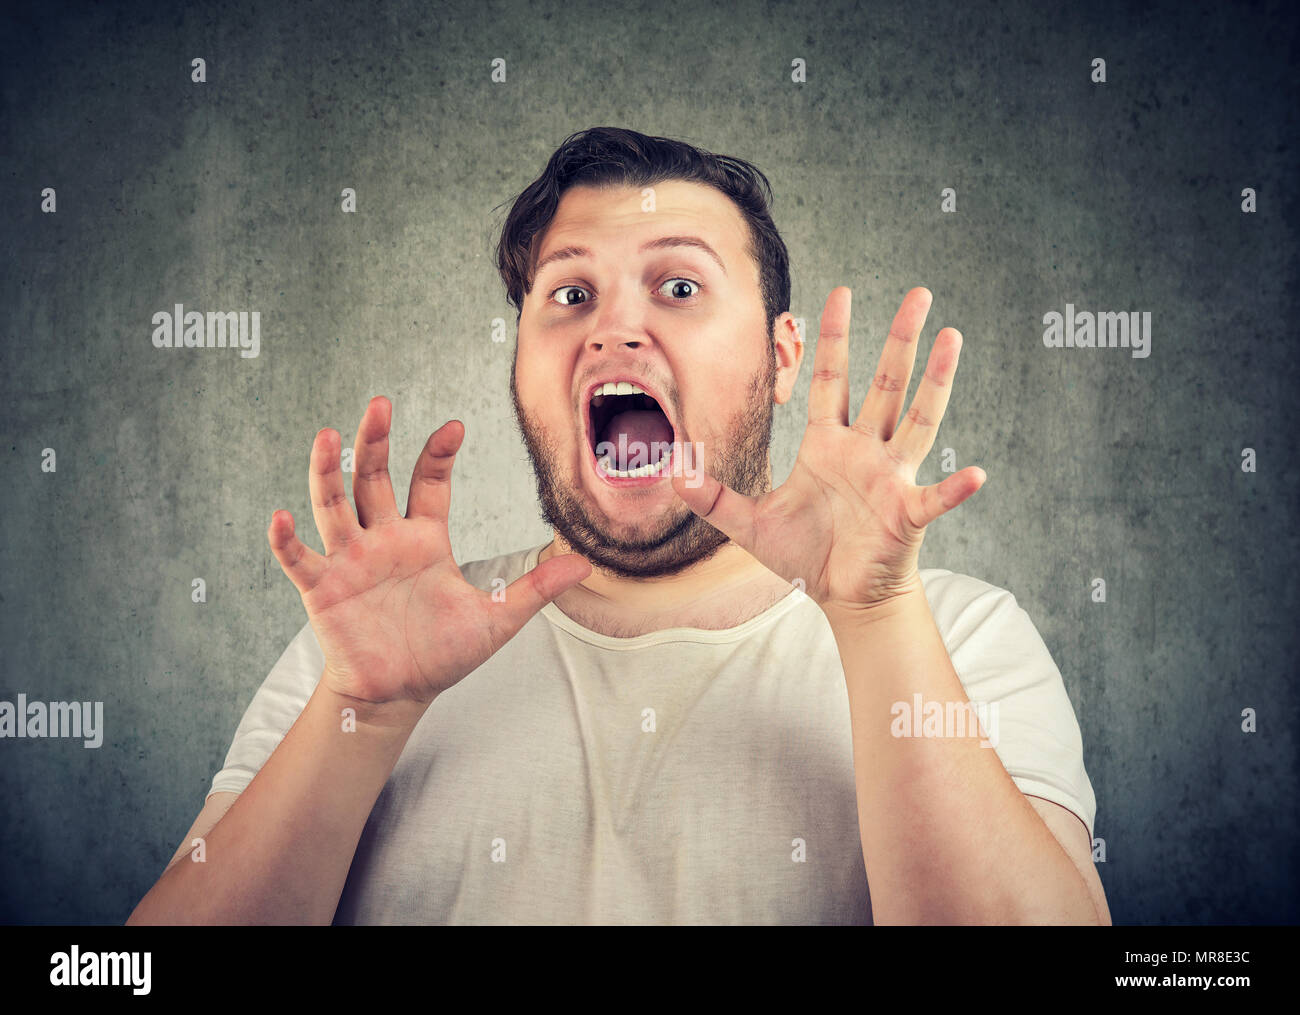 Chubby casual man holding hands in front of face and screaming with fear looking at camera on gray background. - Stock Image